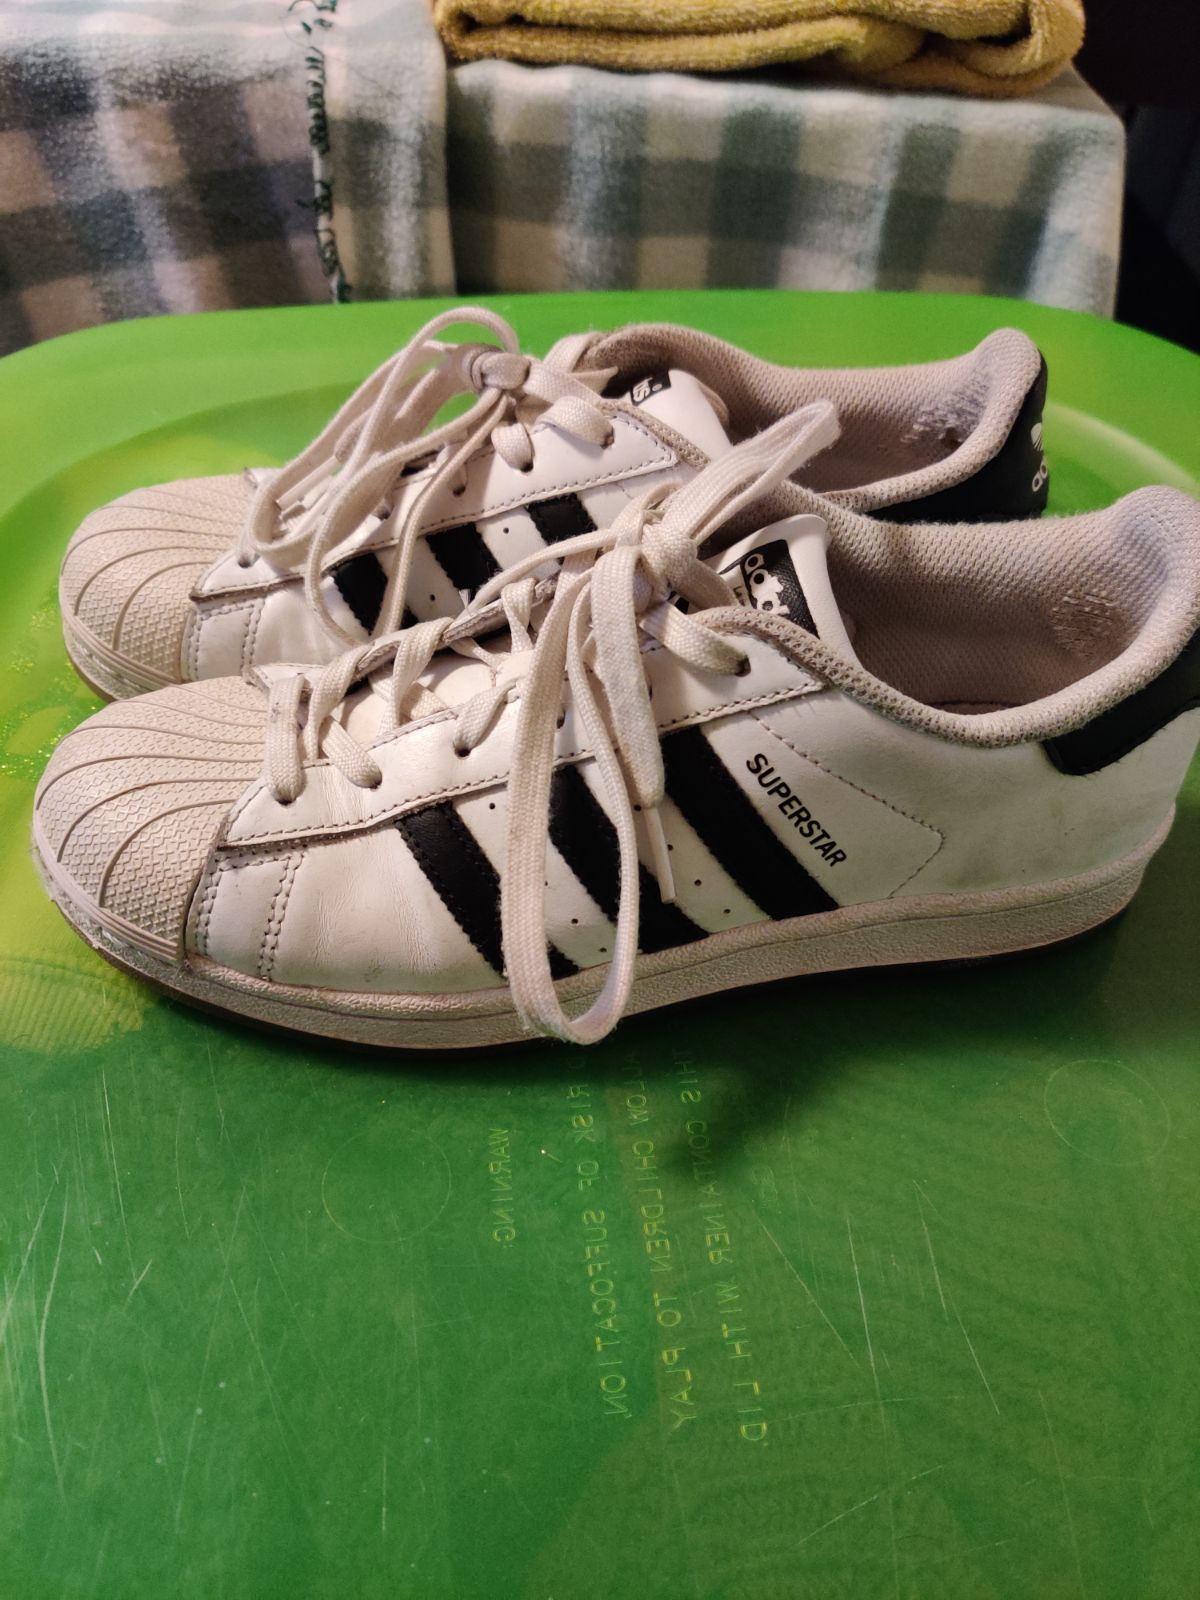 Adidas Superstars 5.5 in size youth but